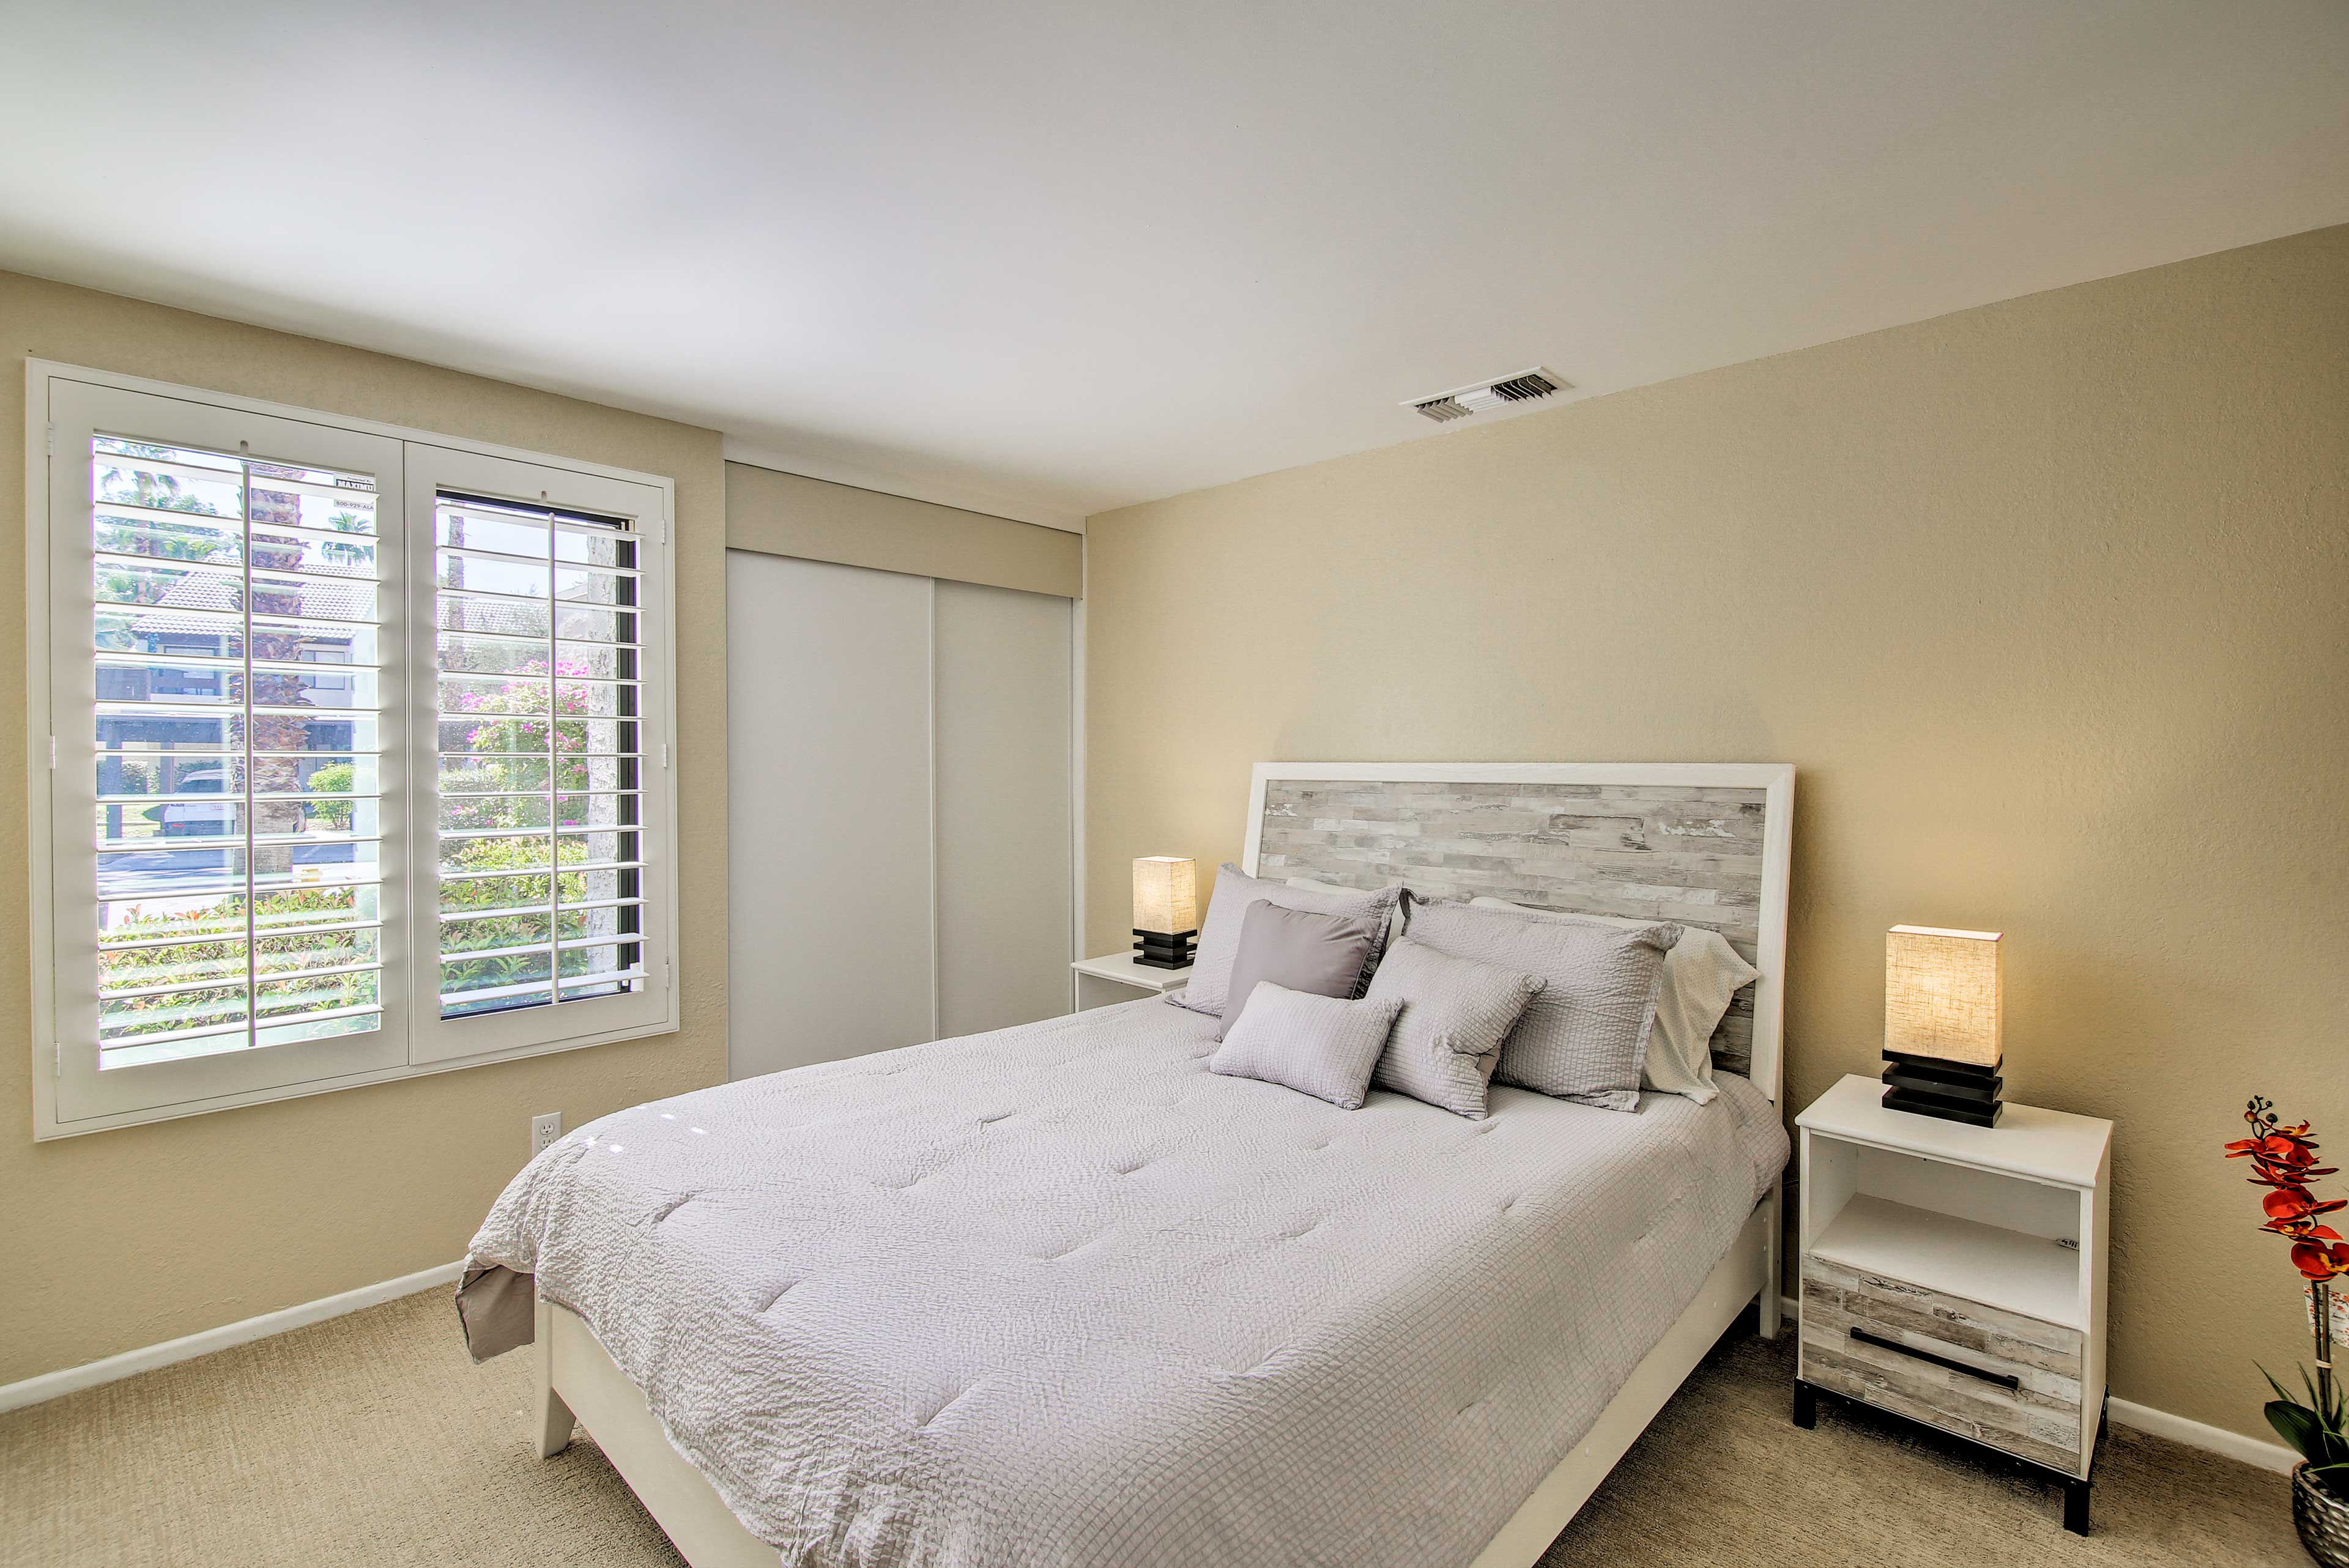 The second bedroom also features a queen bed for 2.